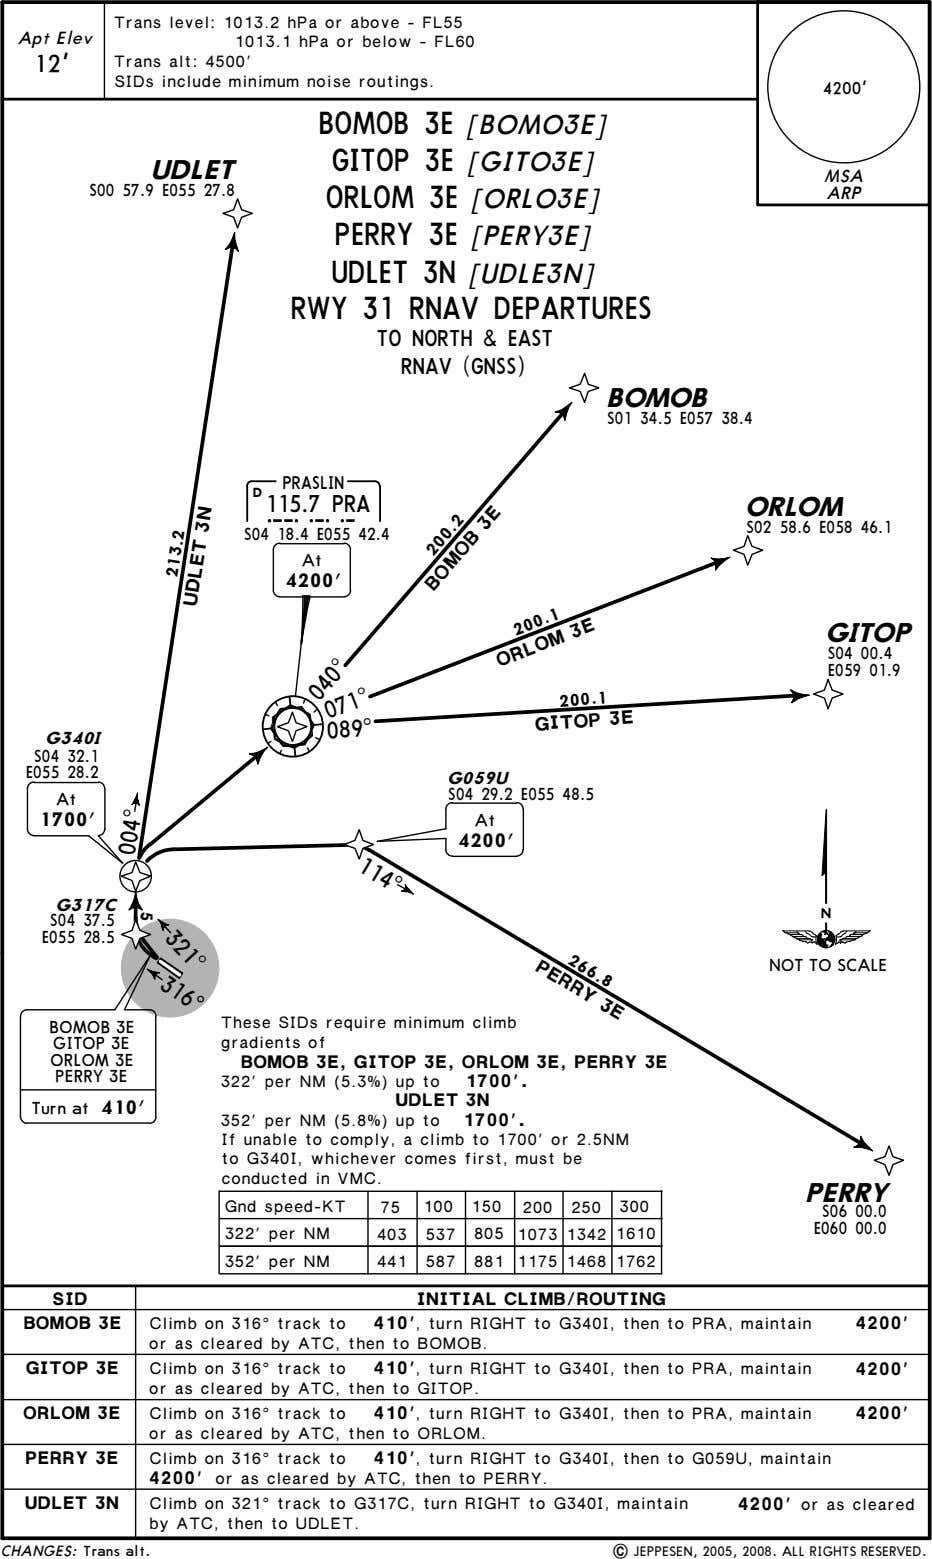 Apt Elev 12' Trans level: 1013.2 hPa or above - FL55 1013.1 hPa or below